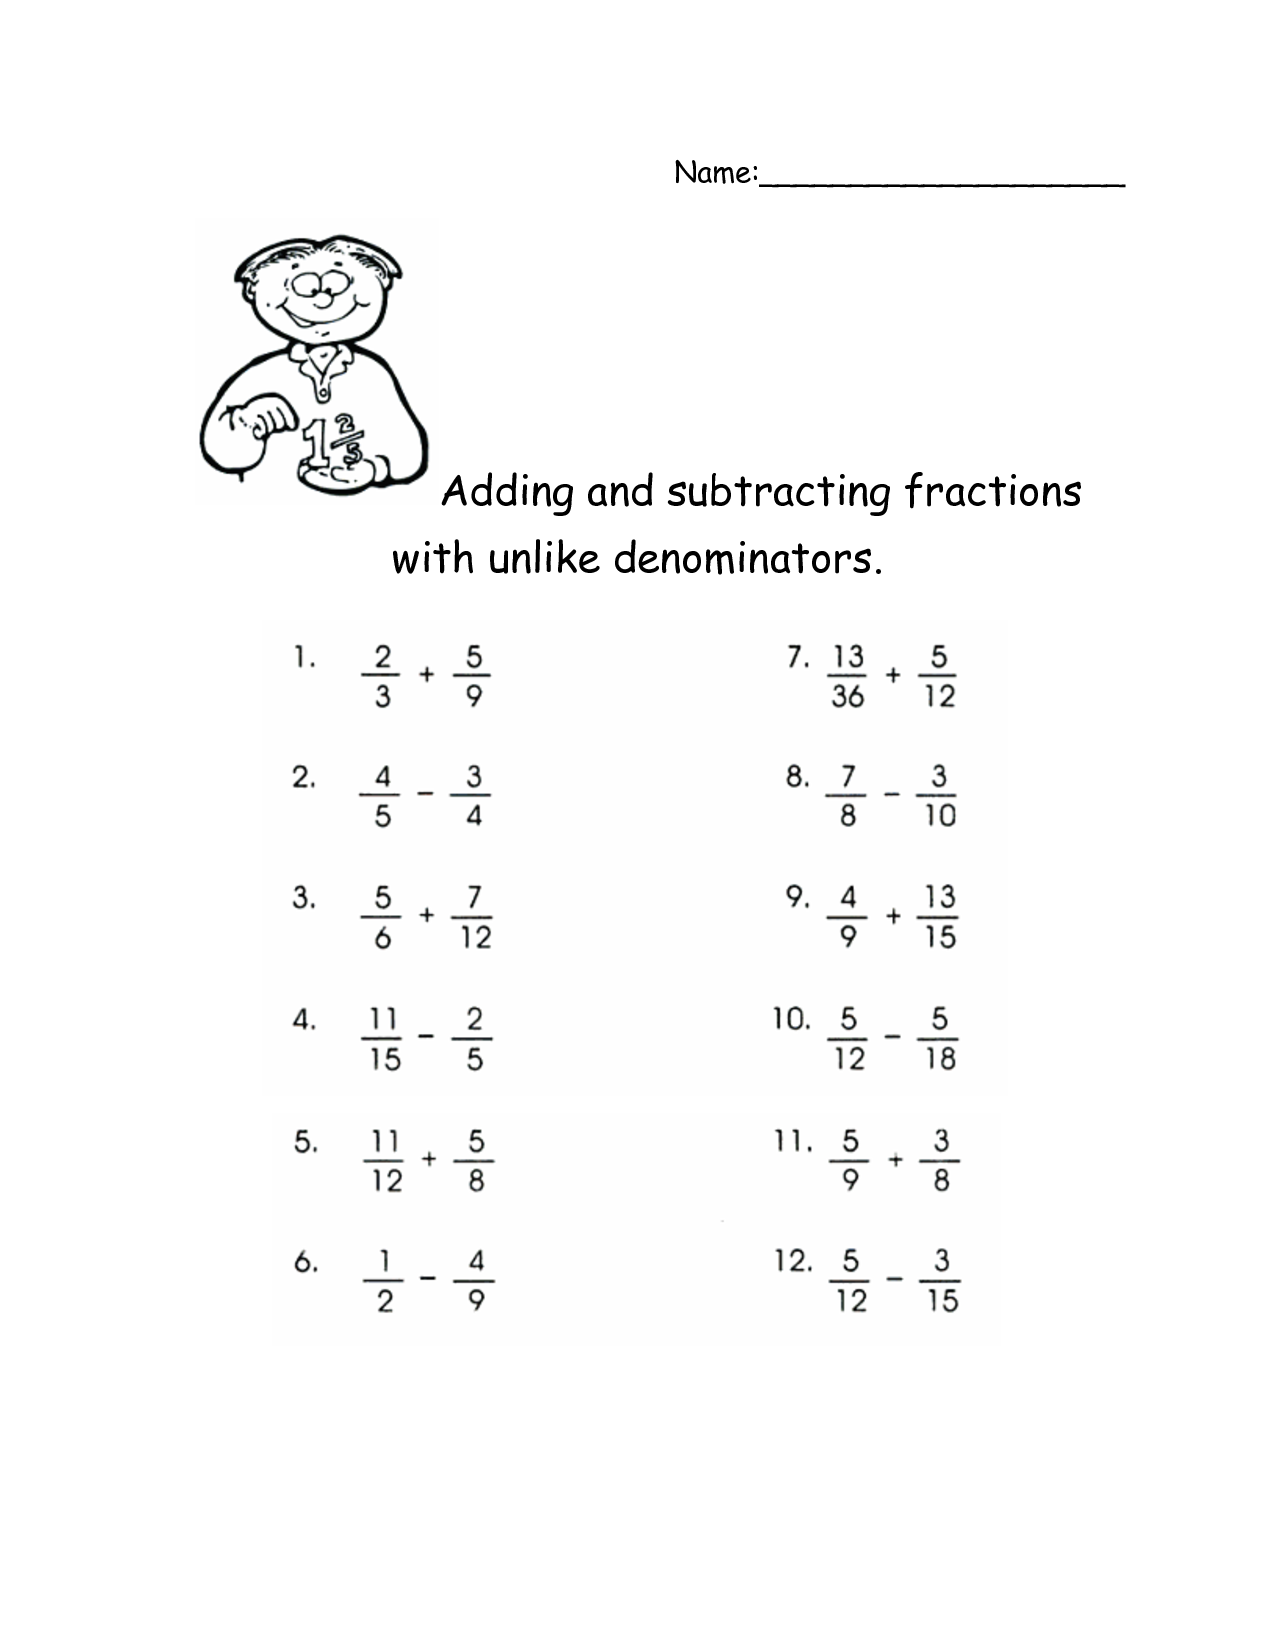 worksheet Adding Subtracting Multiplying And Dividing Fractions Worksheets adding and subtracting fractions with unlike denominators activities